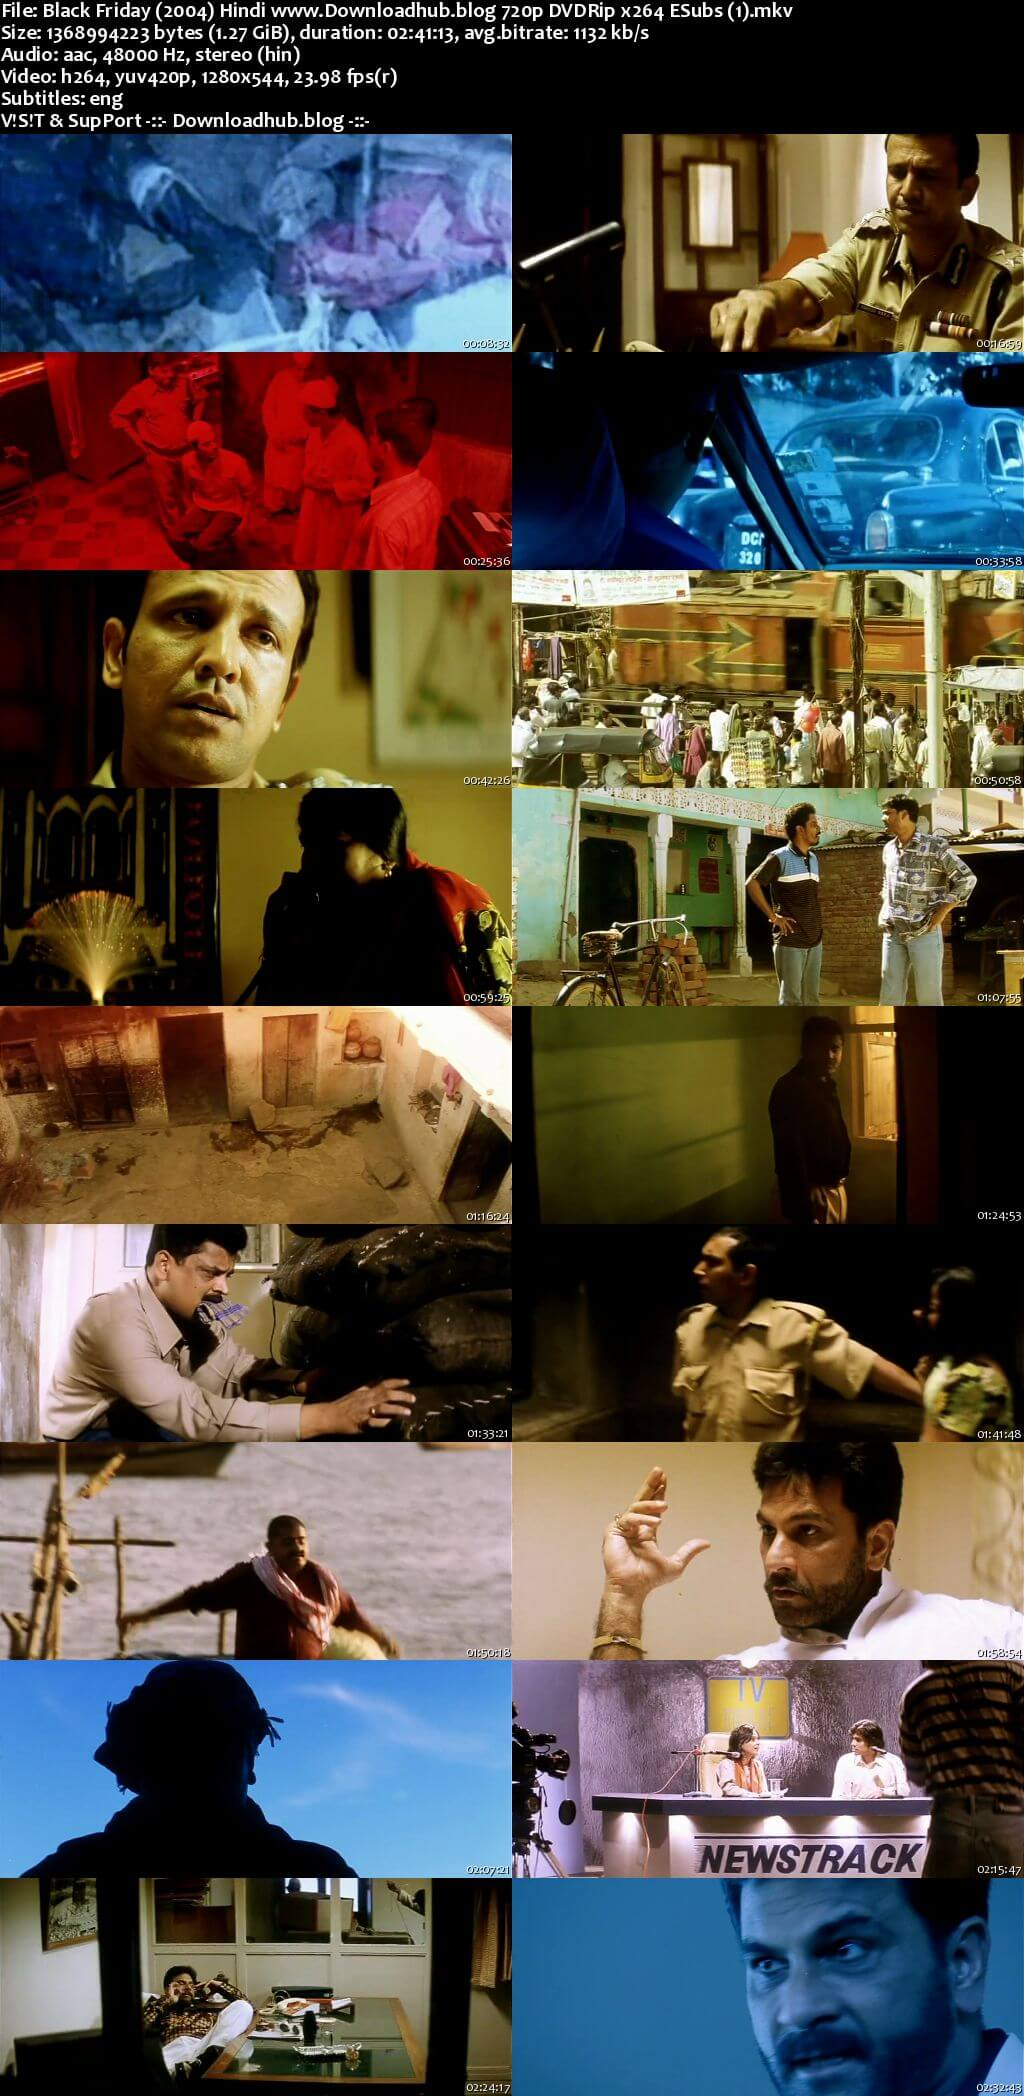 Black Friday 2004 Hindi 720p DVDRip ESubs